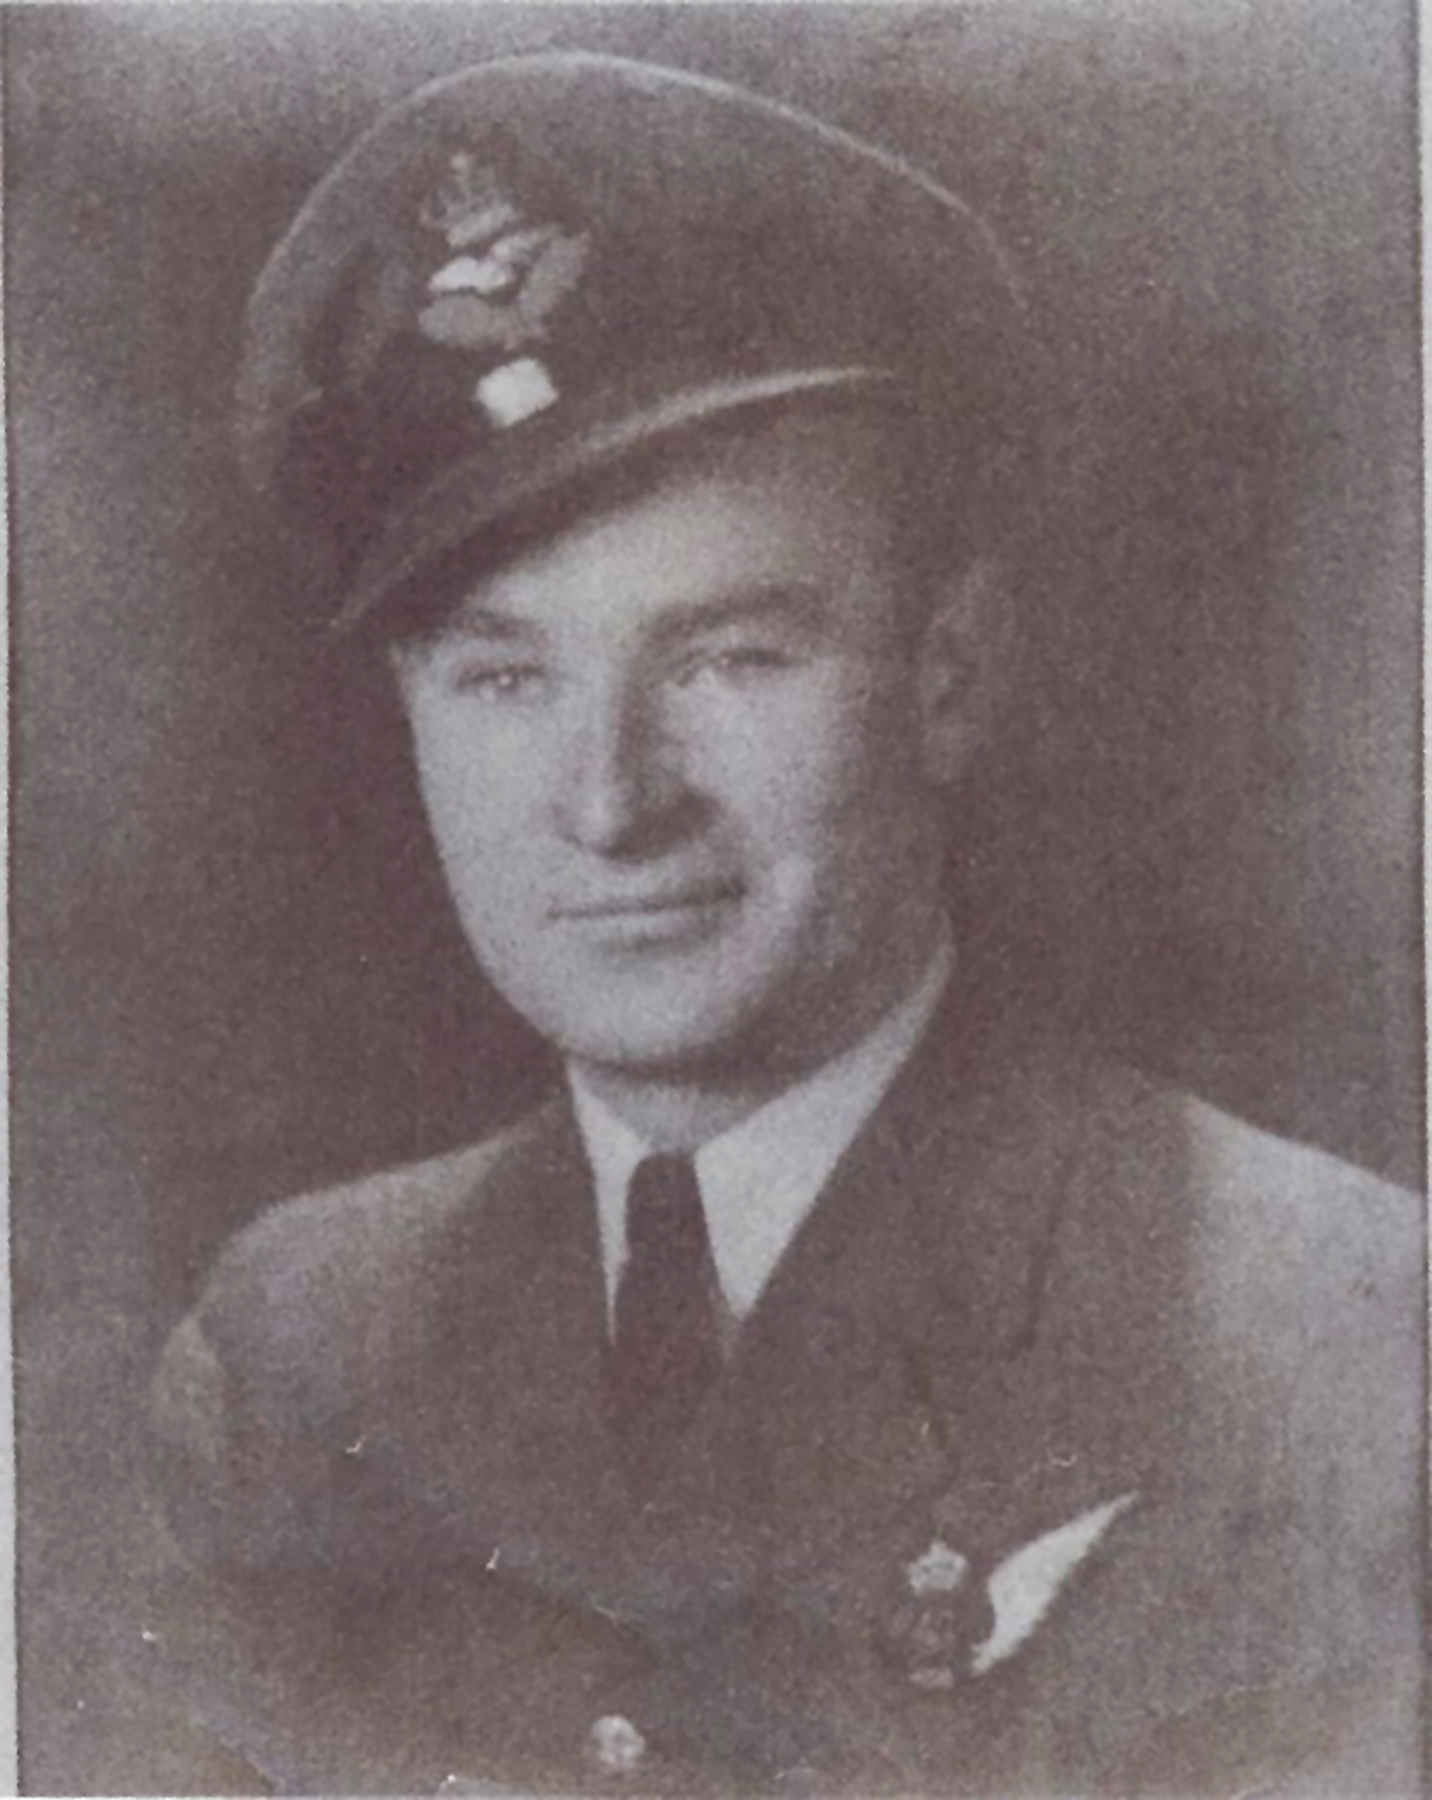 Pilot Officer Jerry Taylor Guthrie, from Crewson's Corners, Ontario, died on July 29, 1944, when his Halifax VII NP-716 bomber (EQ-P) crashed in Germany. He is buried in the Kiel War Cemetery in Schleswig-Holstein, Germany. PHOTO: http://www.veterans.gc.ca/eng/remembrance/memorials/canadian-virtual-war-memorial/detail/2356443